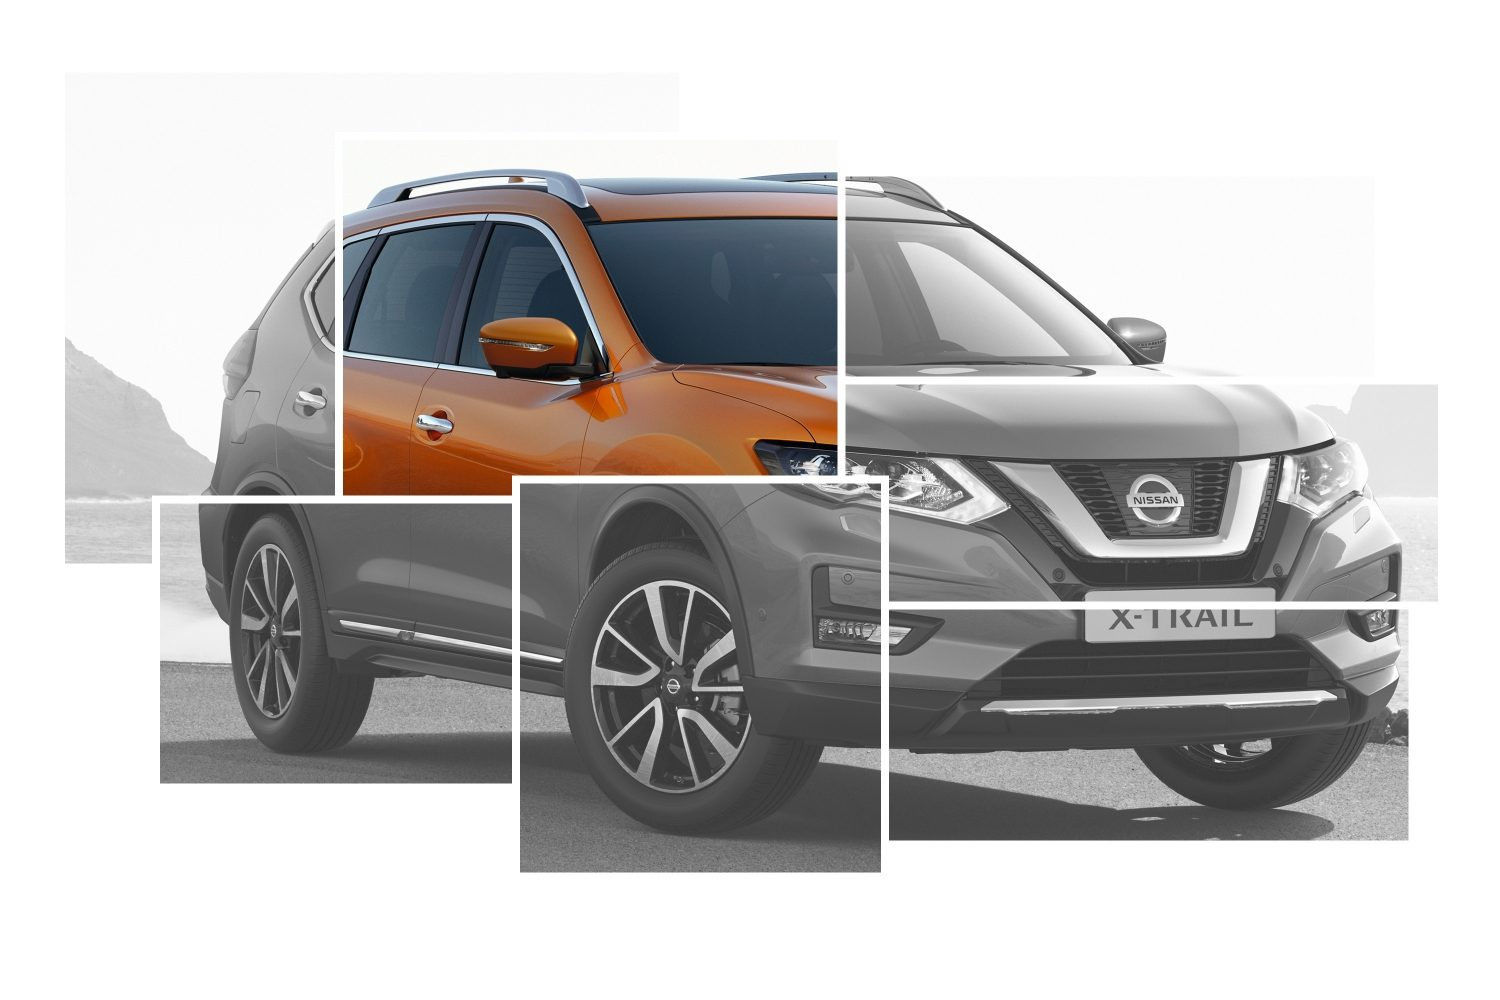 X-Trail Exterior Design collage focus on auto-folding mirrors